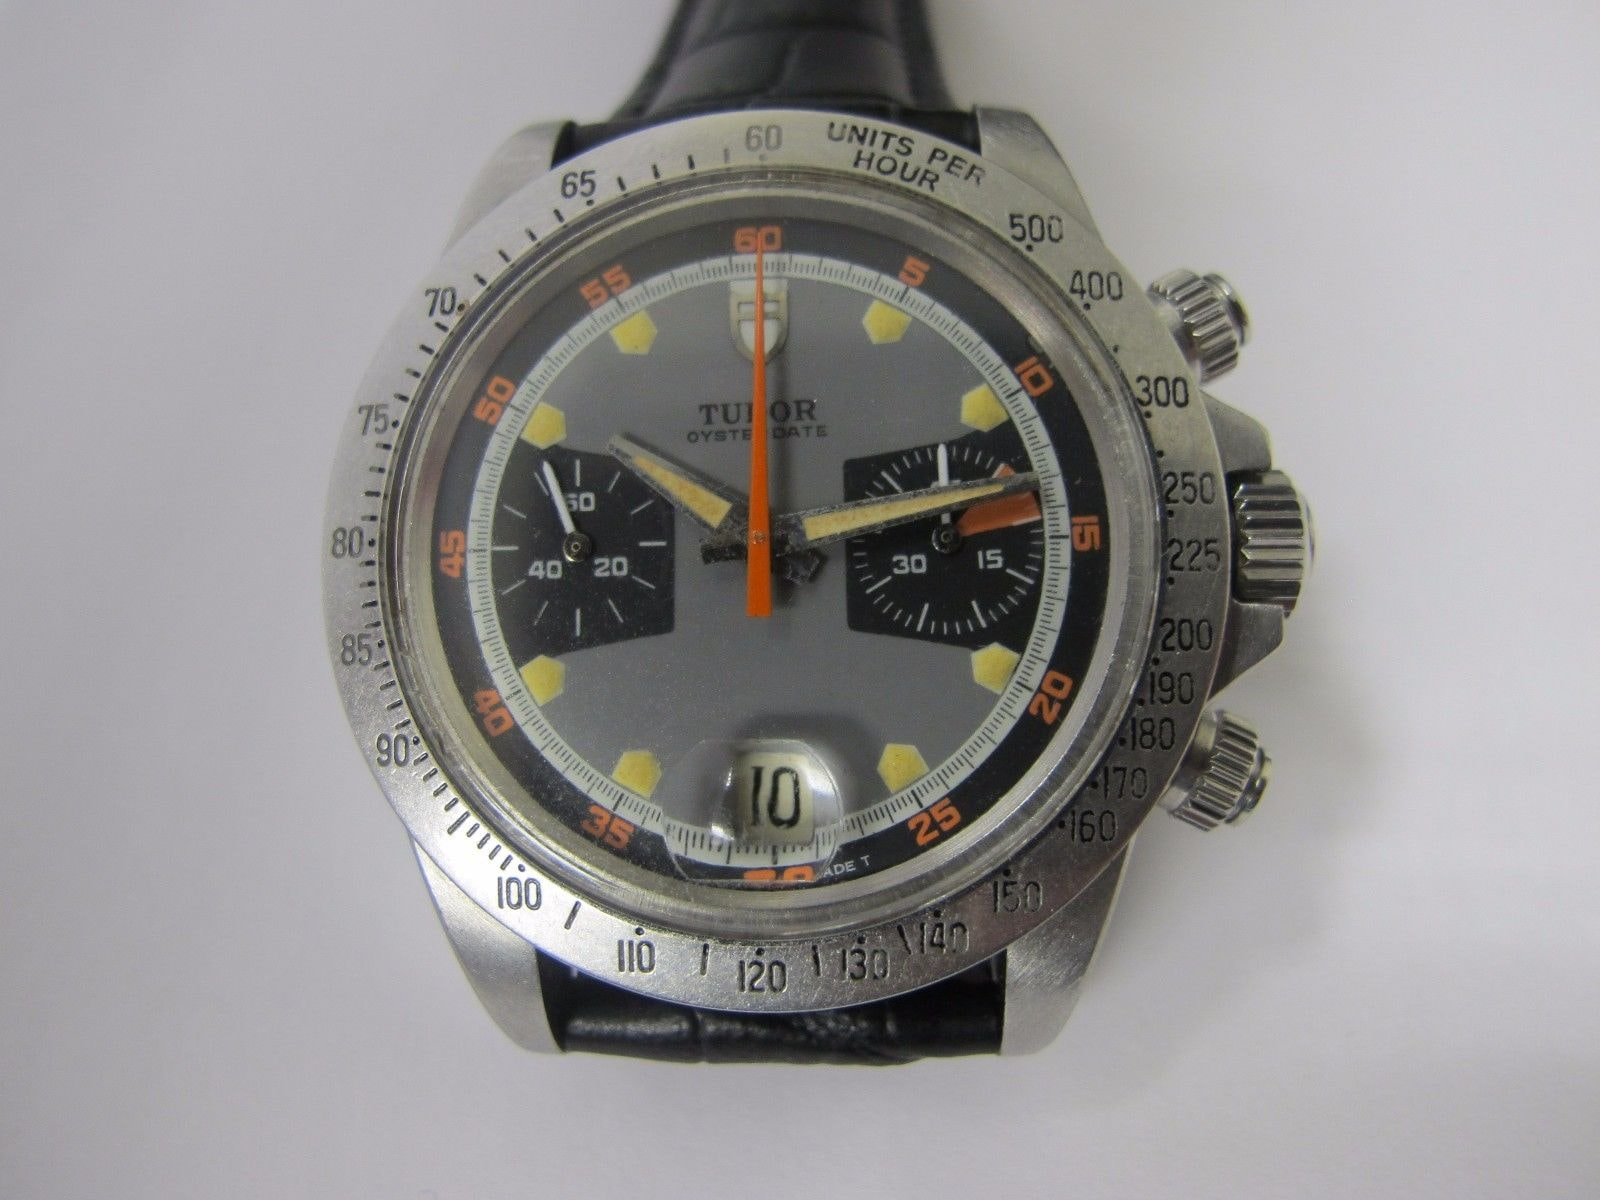 Don't bid on this fraudulent Tudor chronograph Bring a Loupe: Vintage Chronographs And Dive Watches From Universal Geneve, Breitling, Lip, And Others Bring a Loupe: Vintage Chronographs And Dive Watches From Universal Geneve, Breitling, Lip, And Others Fake Tudor